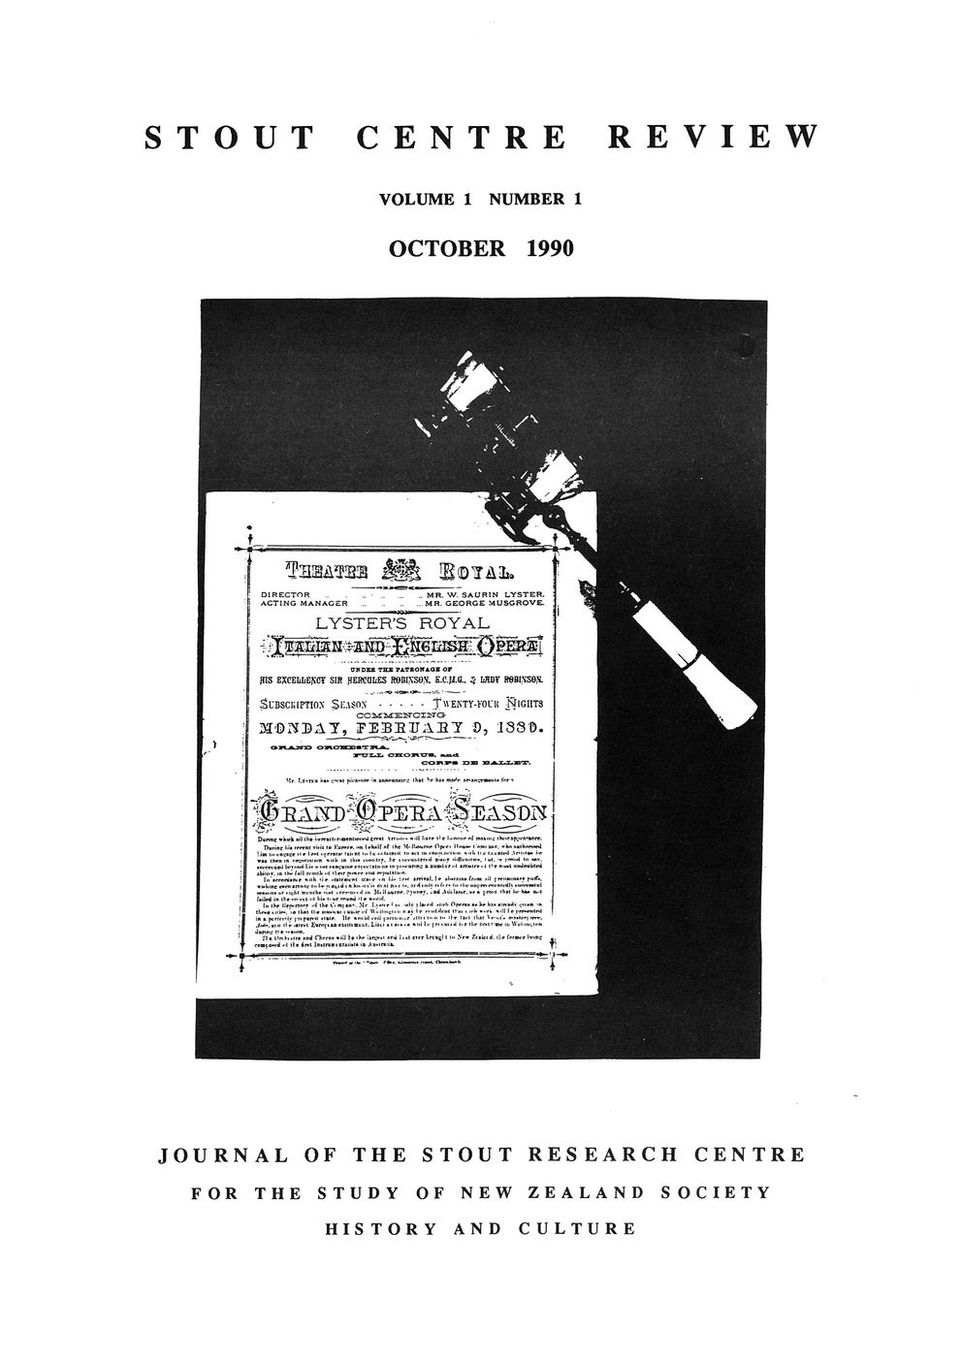 Cover of Stout Centre Review, 1990, V. 1, N. 1.